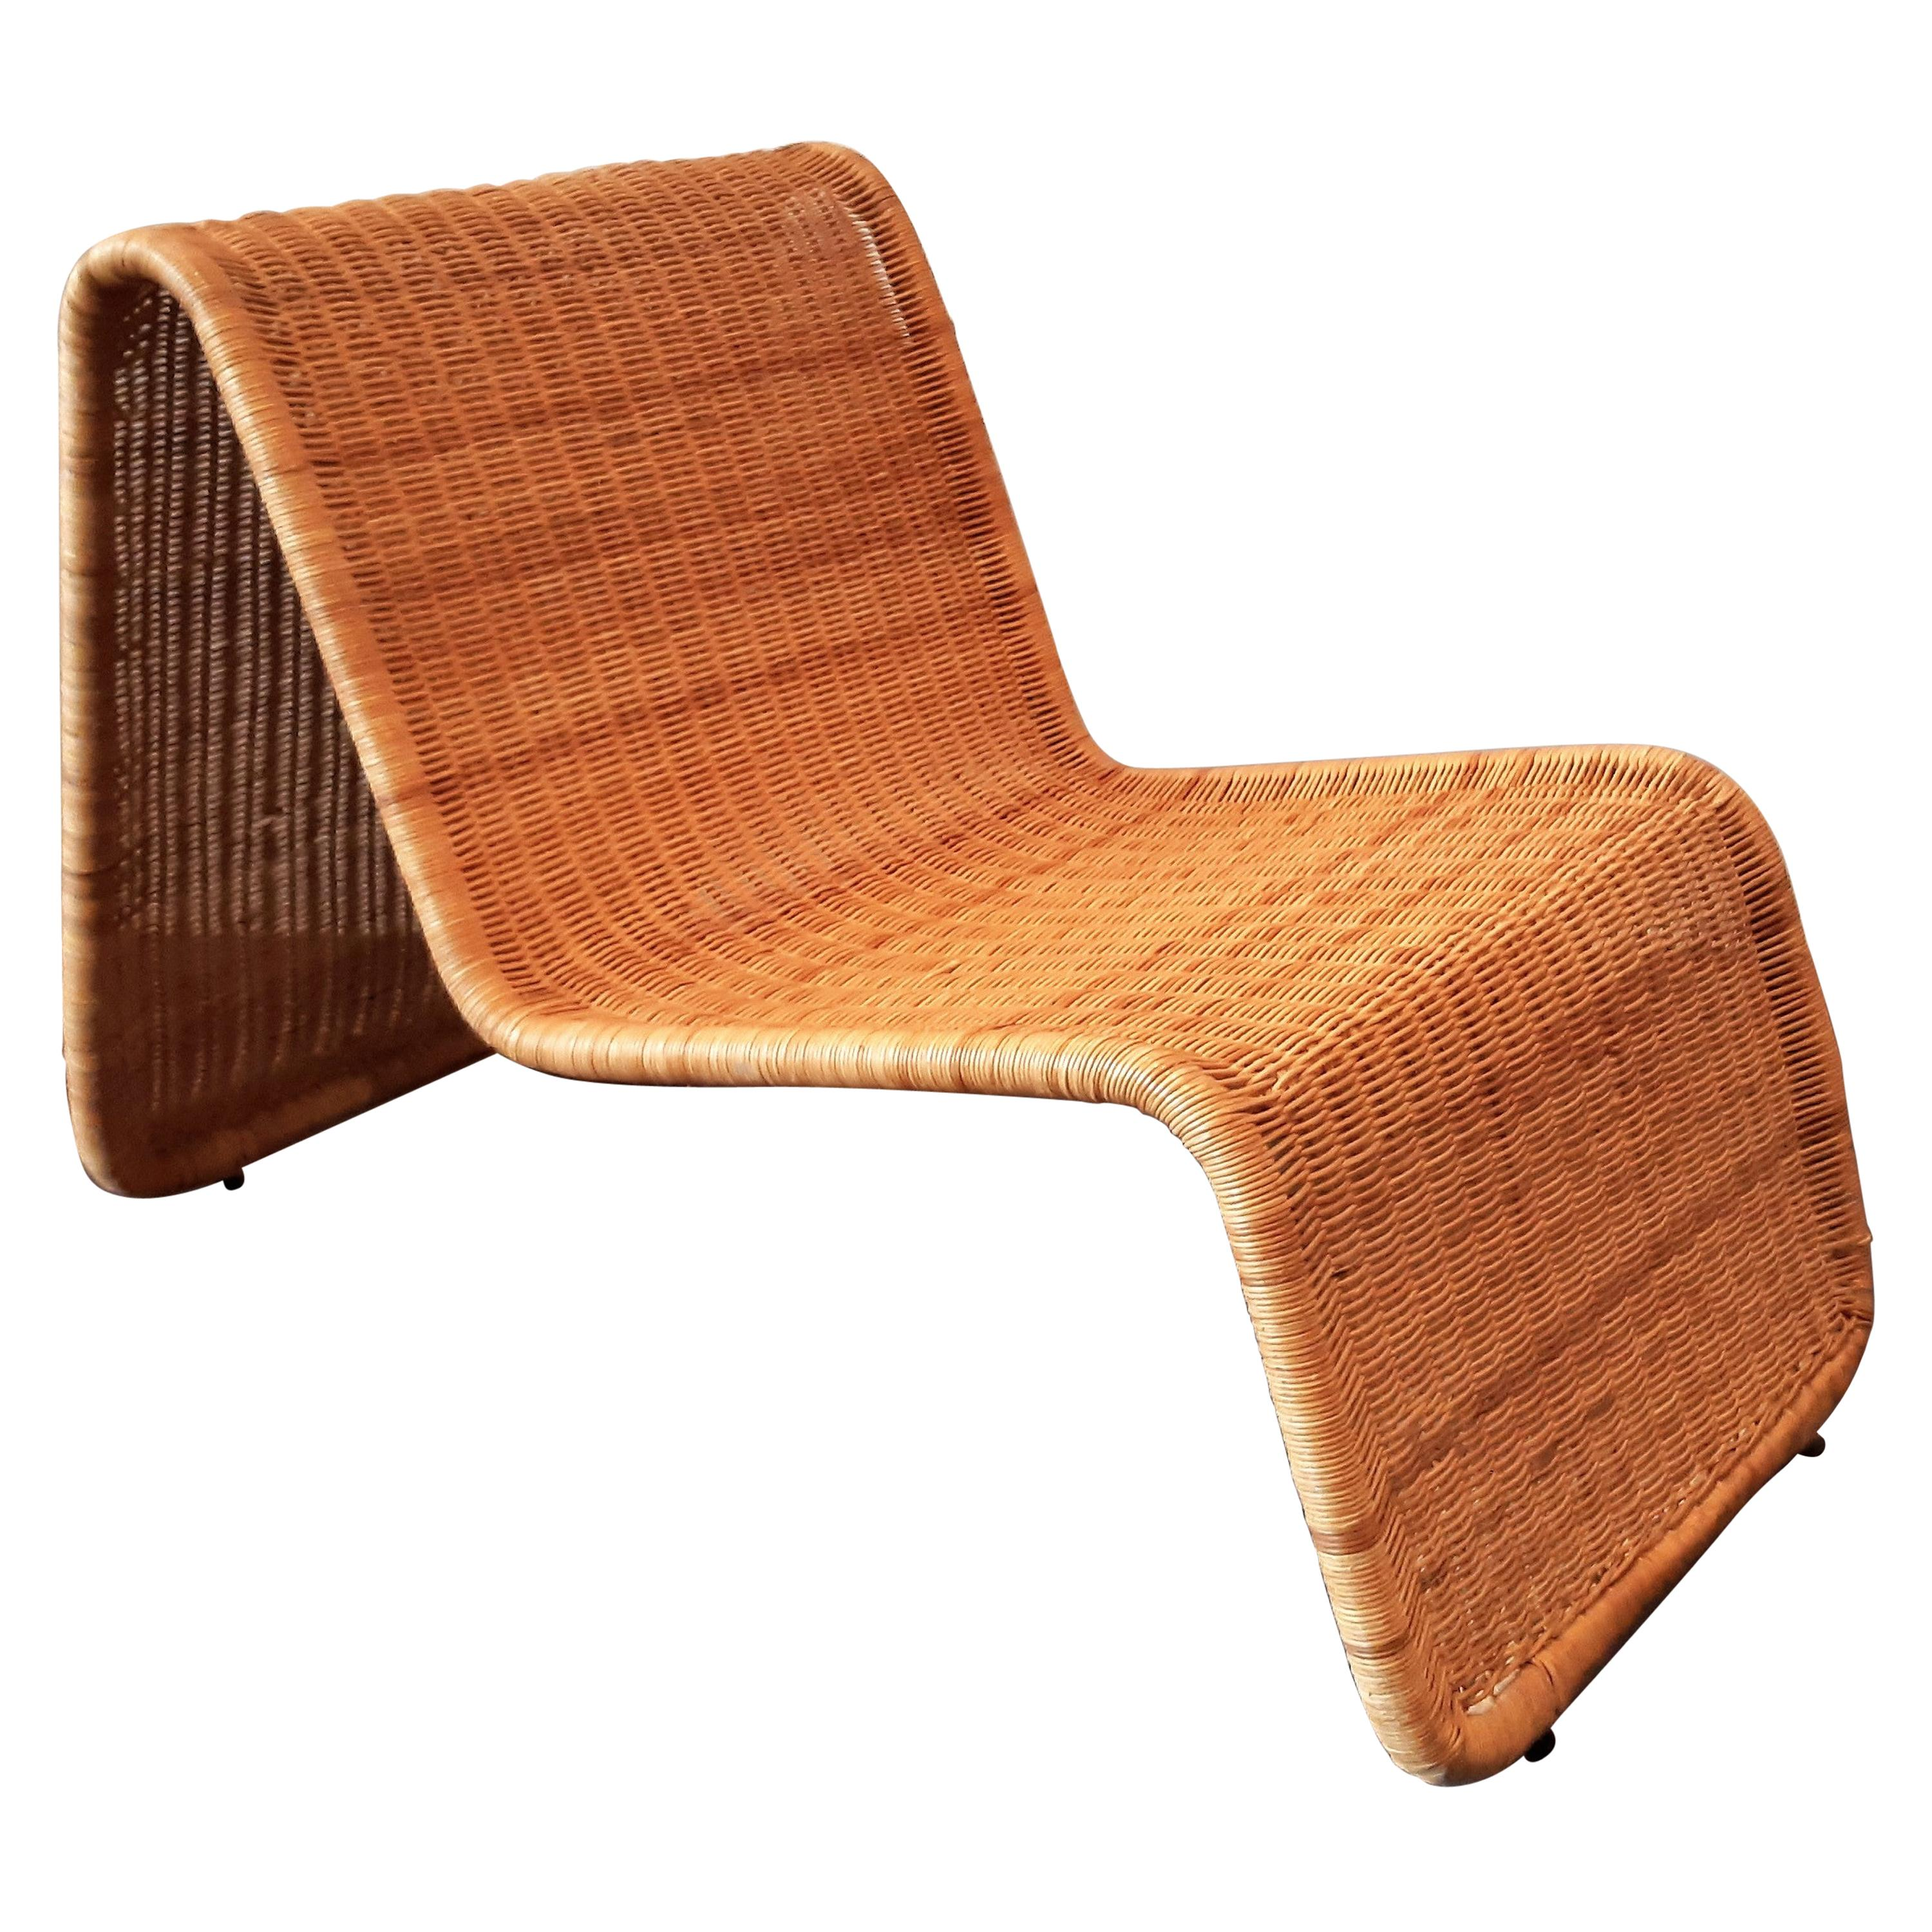 Wicker Lounge Chair, a Design After Tito Agnoli for Ikea, 1960s